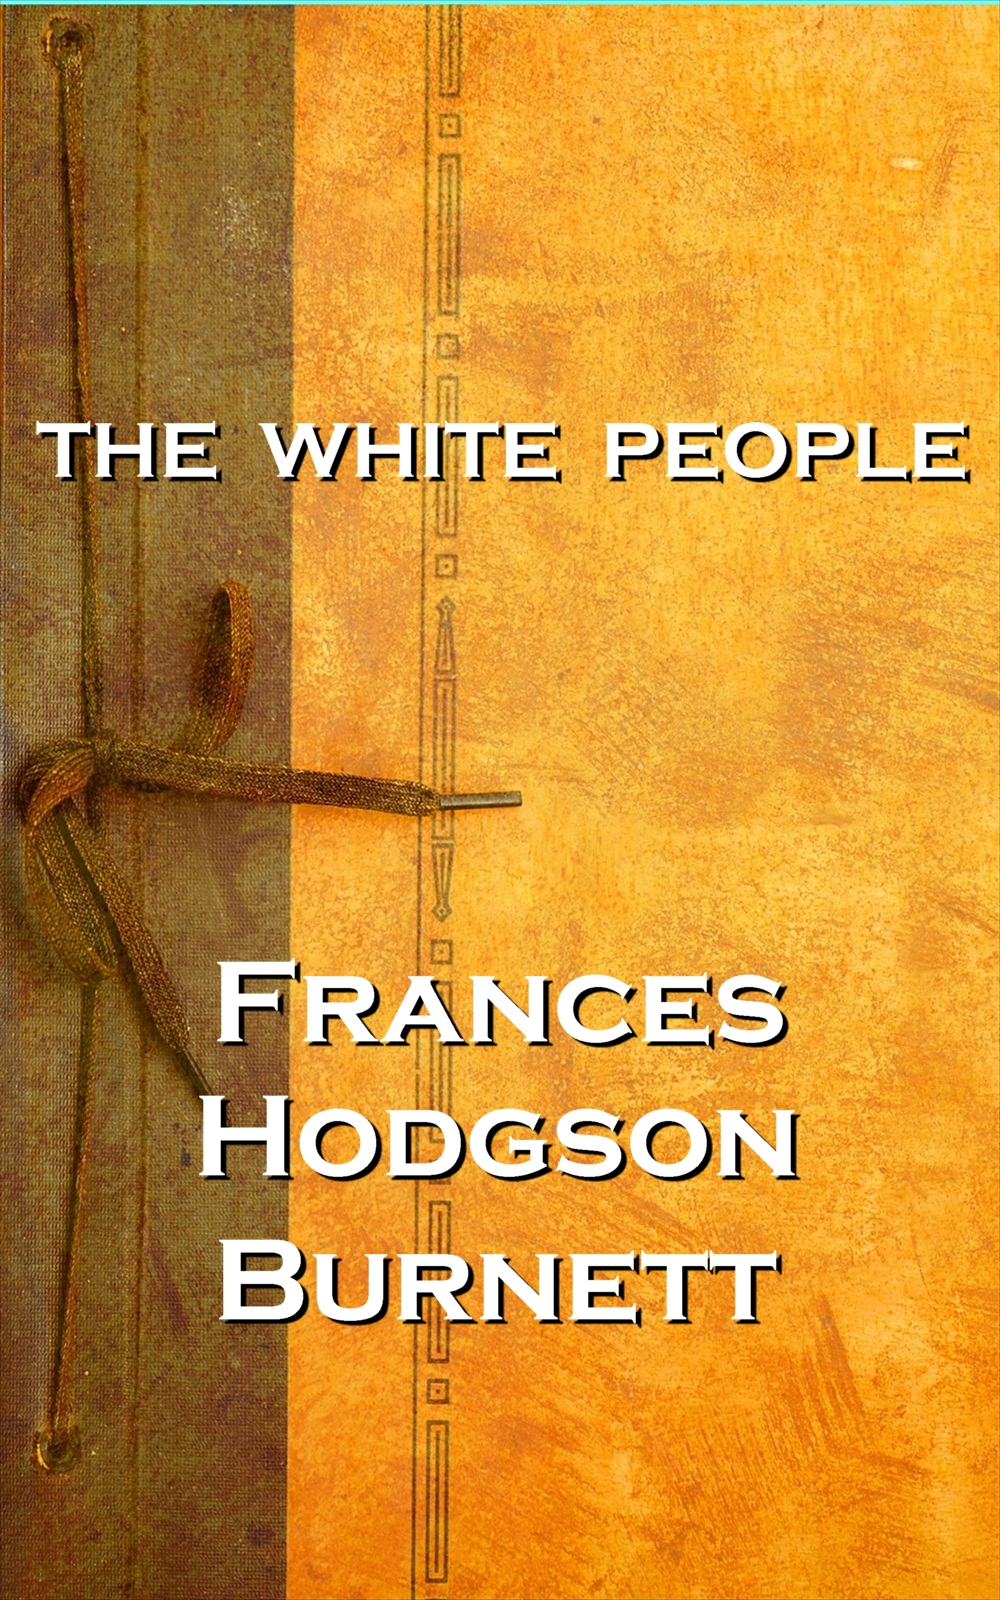 The White People, Frances Hodgson Burnett